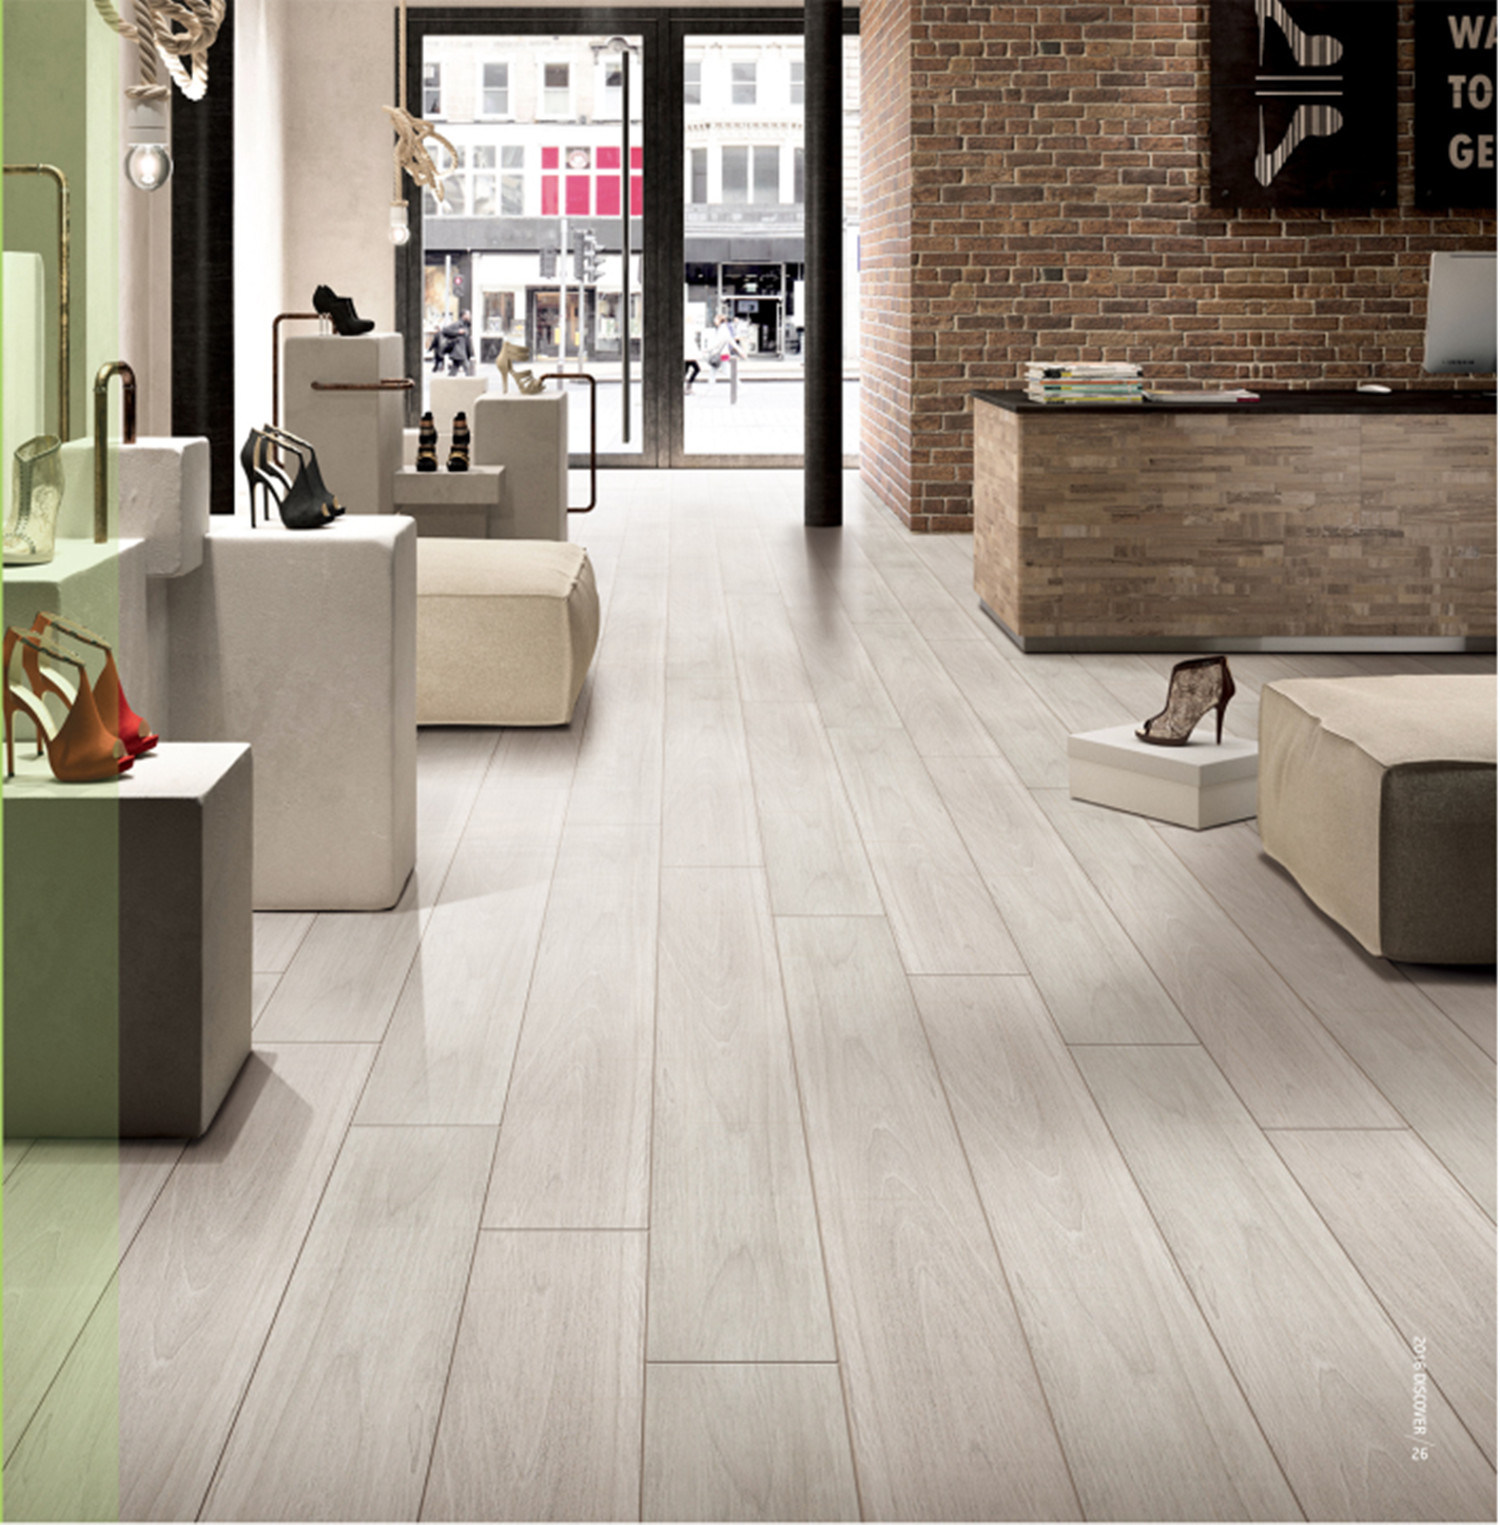 New Timber Wood Glazed Porcelain Tile for Wall and Floor (LF01)